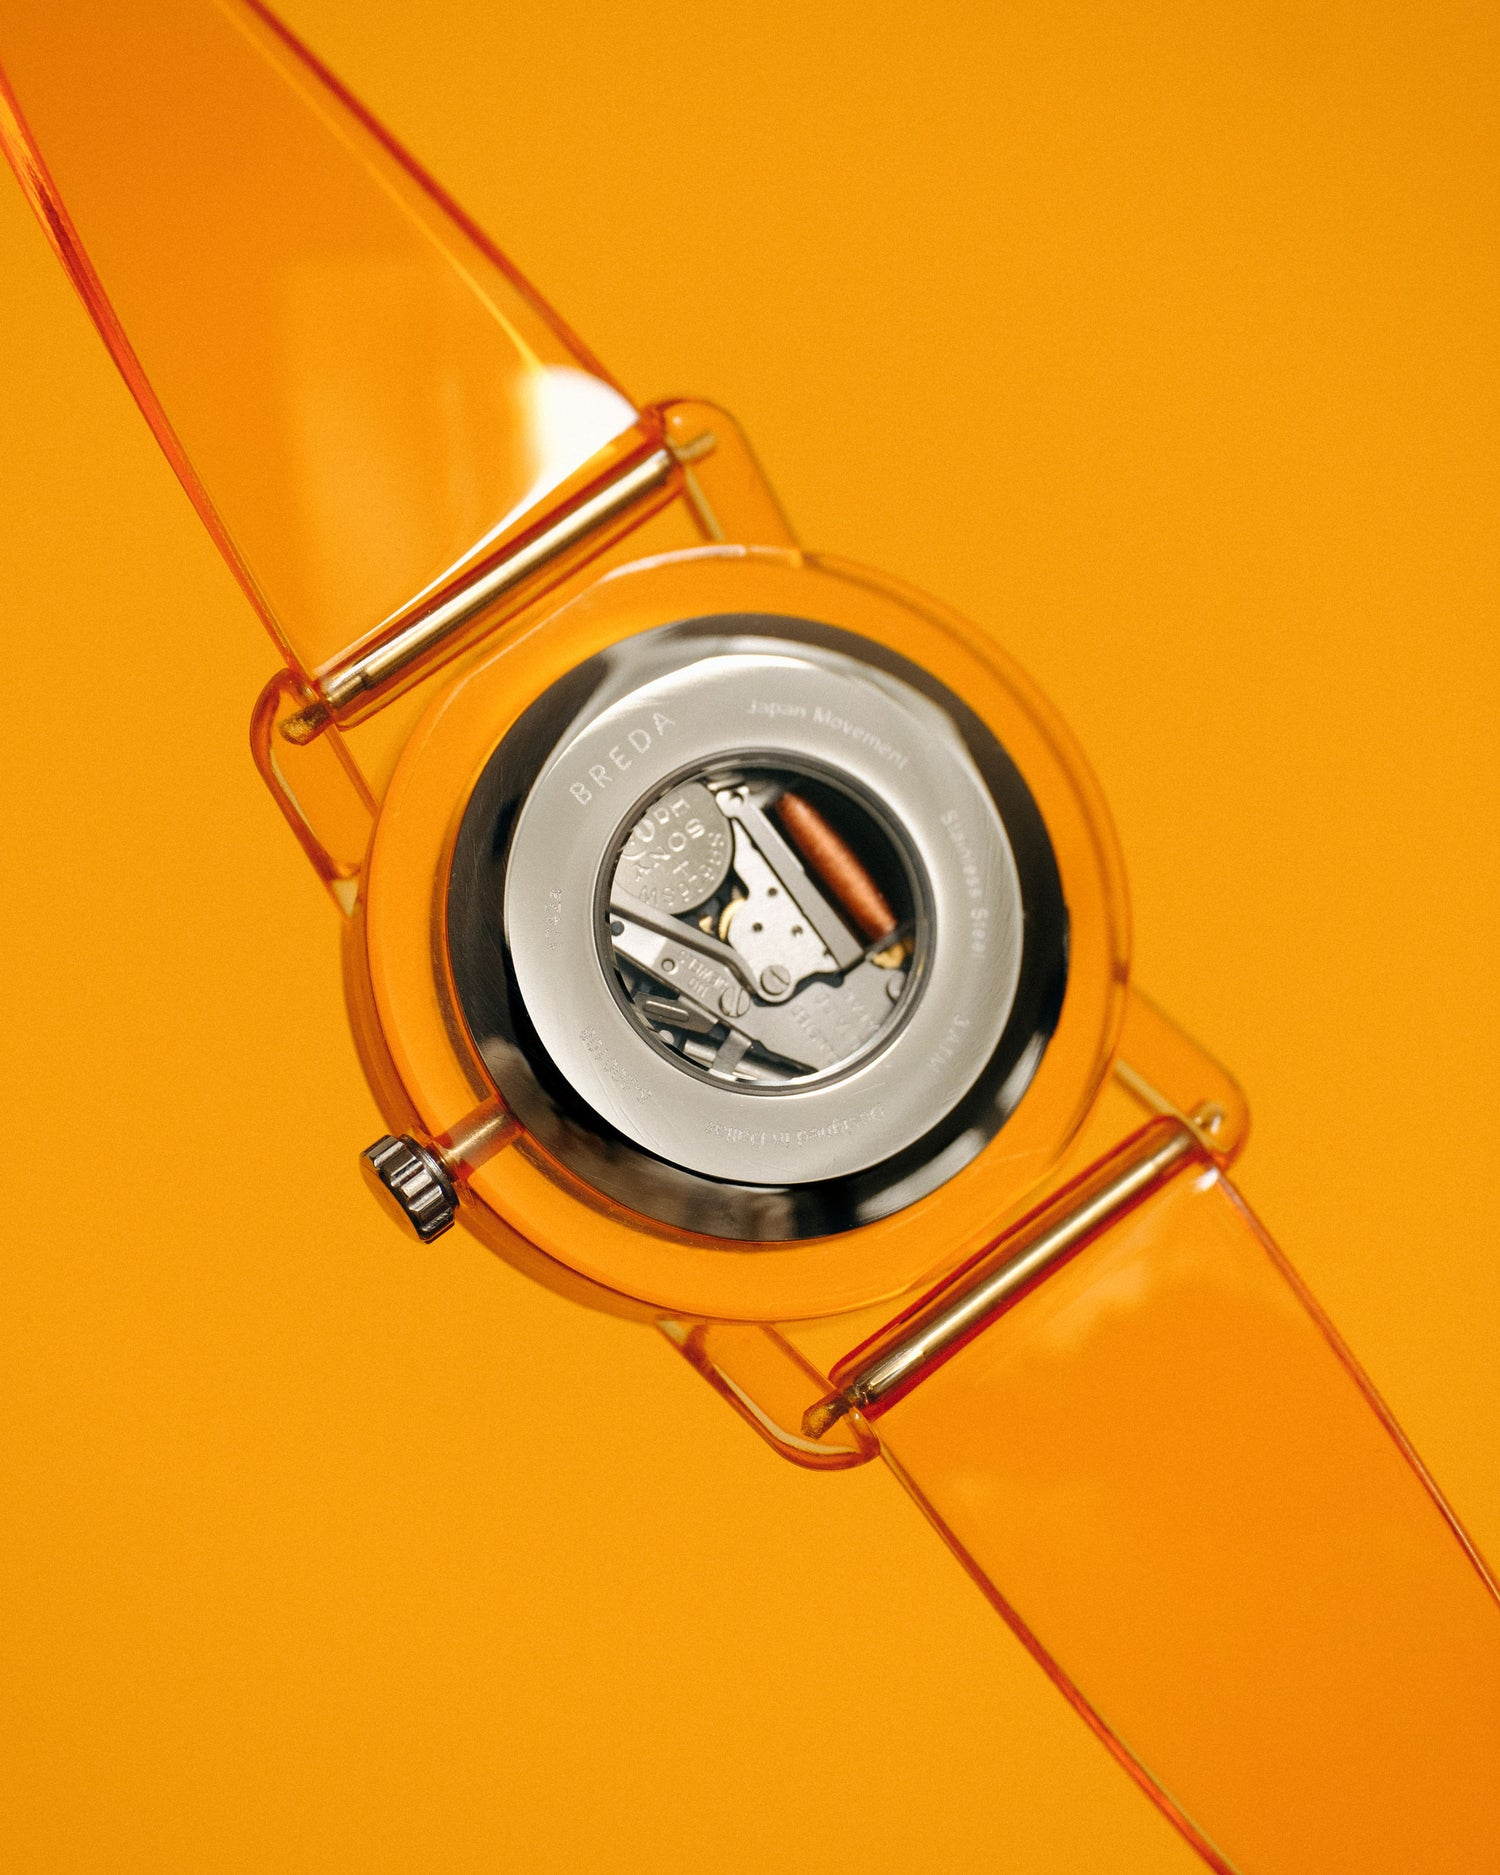 breda-play-1742a-silver-orange-plastic-watch-studio-05